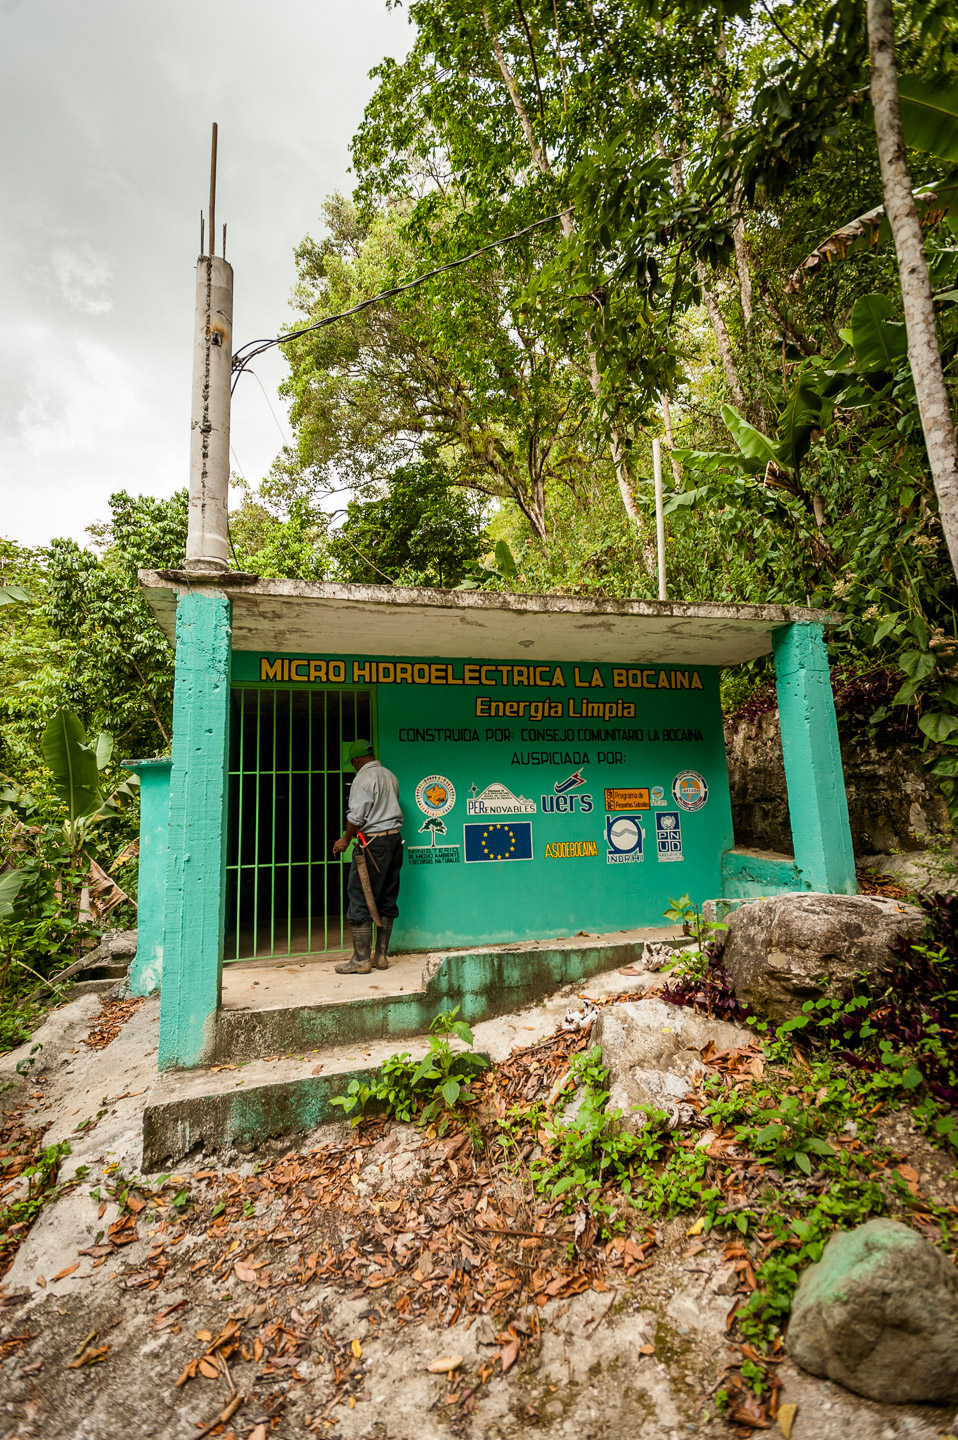 This micro hydro power plant provides electricity to the La Bocaina community in San José De Ocoa, Dominican Republic. An ADESJO joint project with the local community. July 3, 2014.  Copyright © 2014 Art Zaratsyan